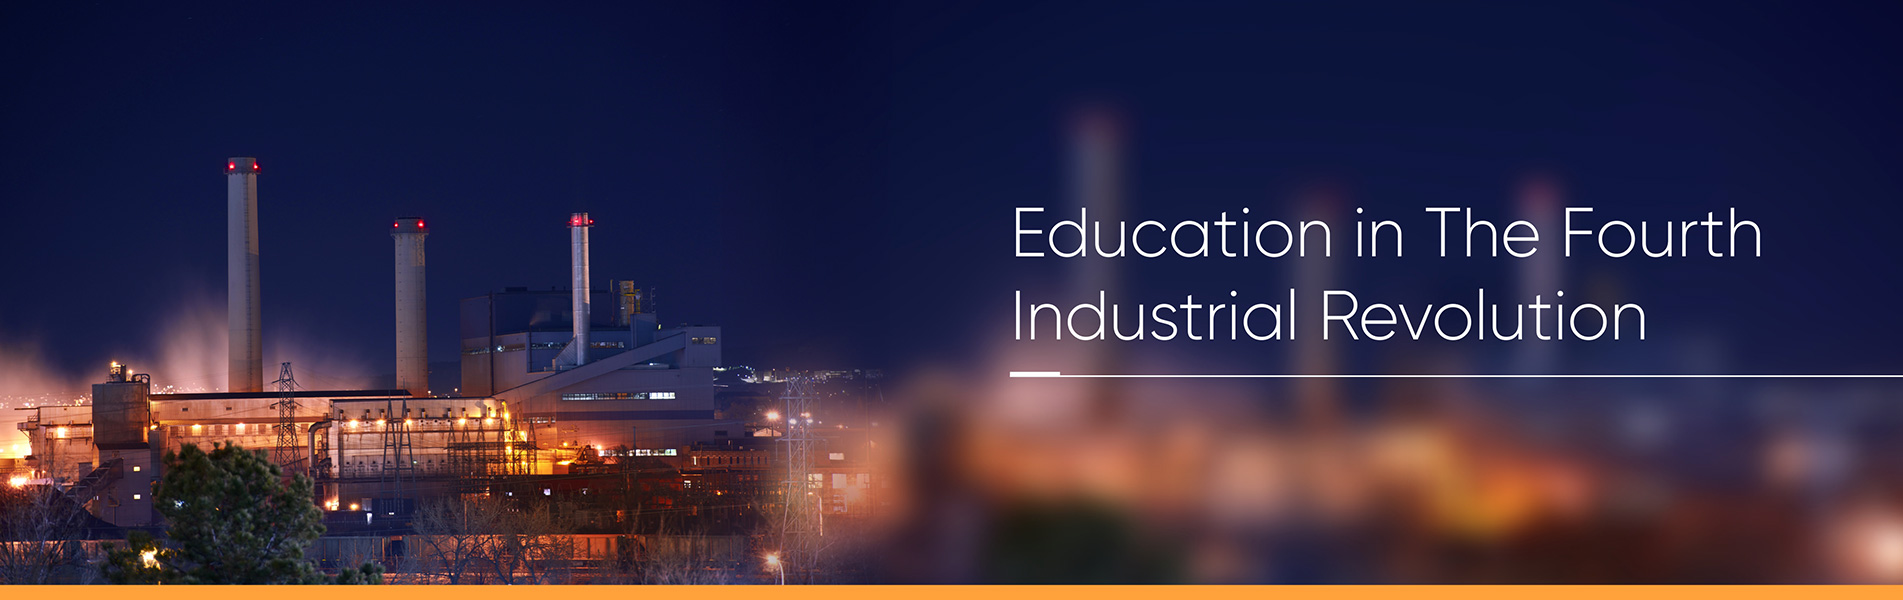 Education in The Fourth Industrial Revolution